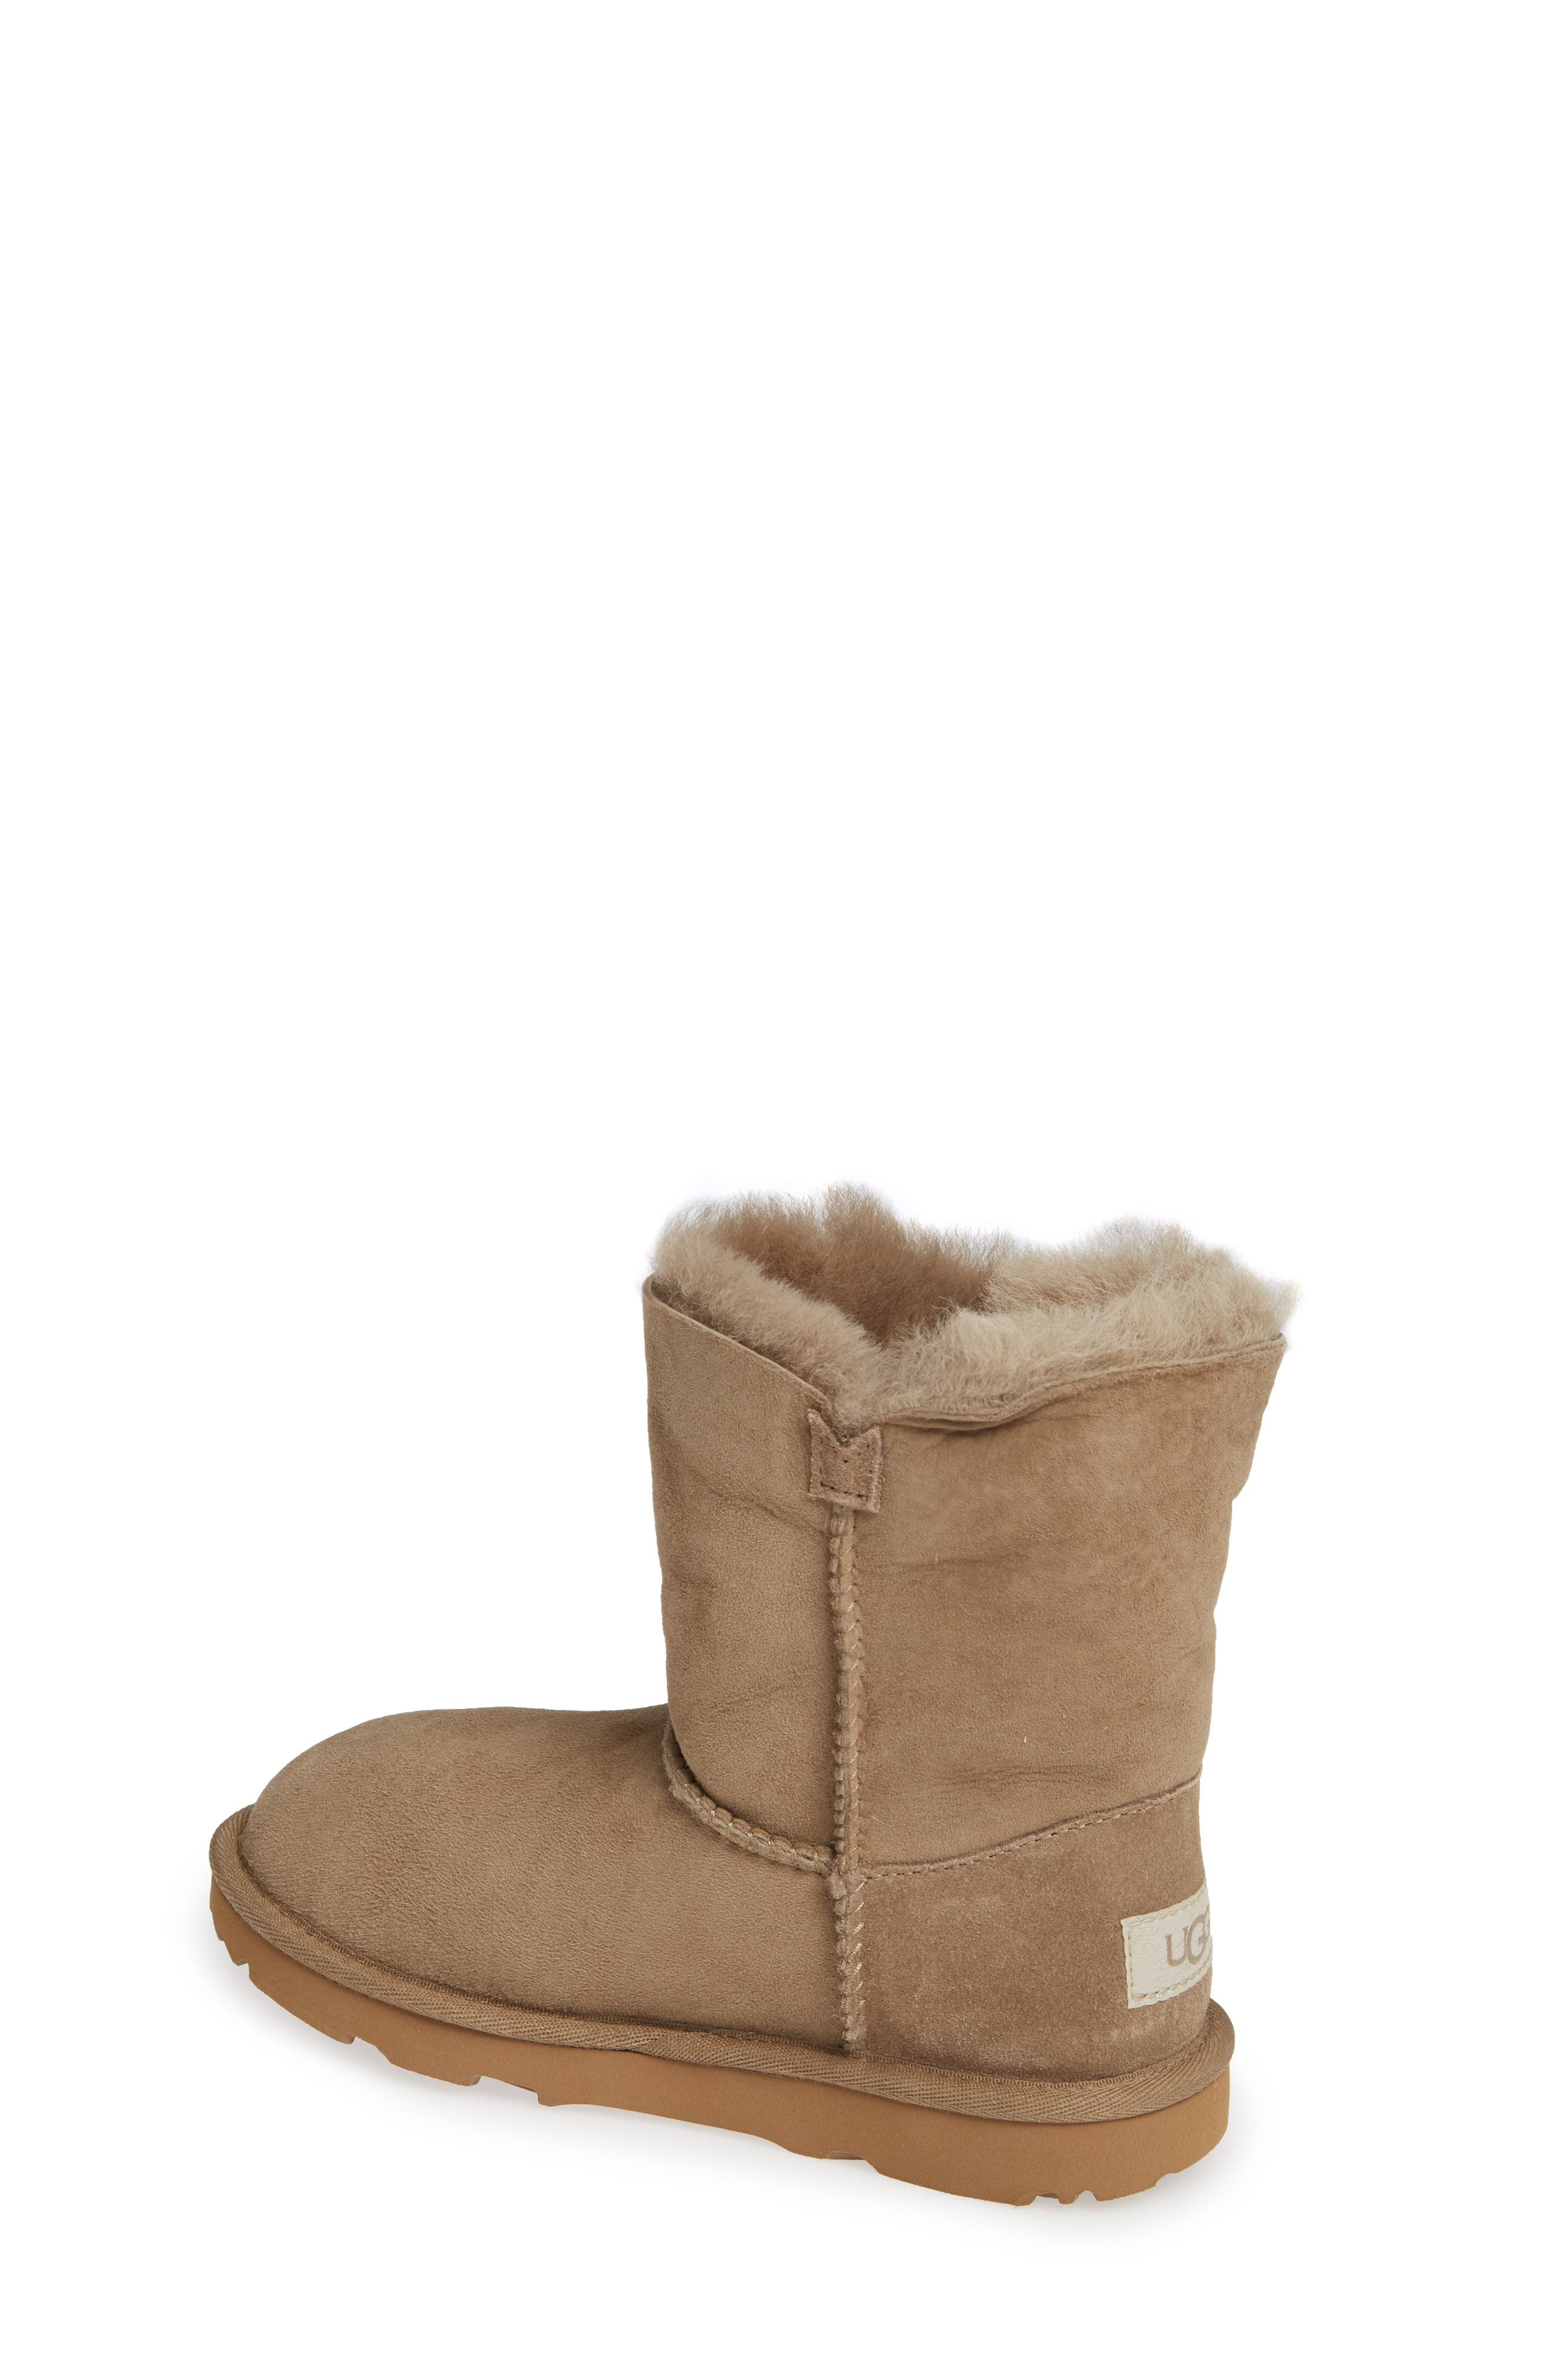 Bailey Button II Water Resistant Genuine Shearling Boot,                             Alternate thumbnail 2, color,                             ANTELOPE